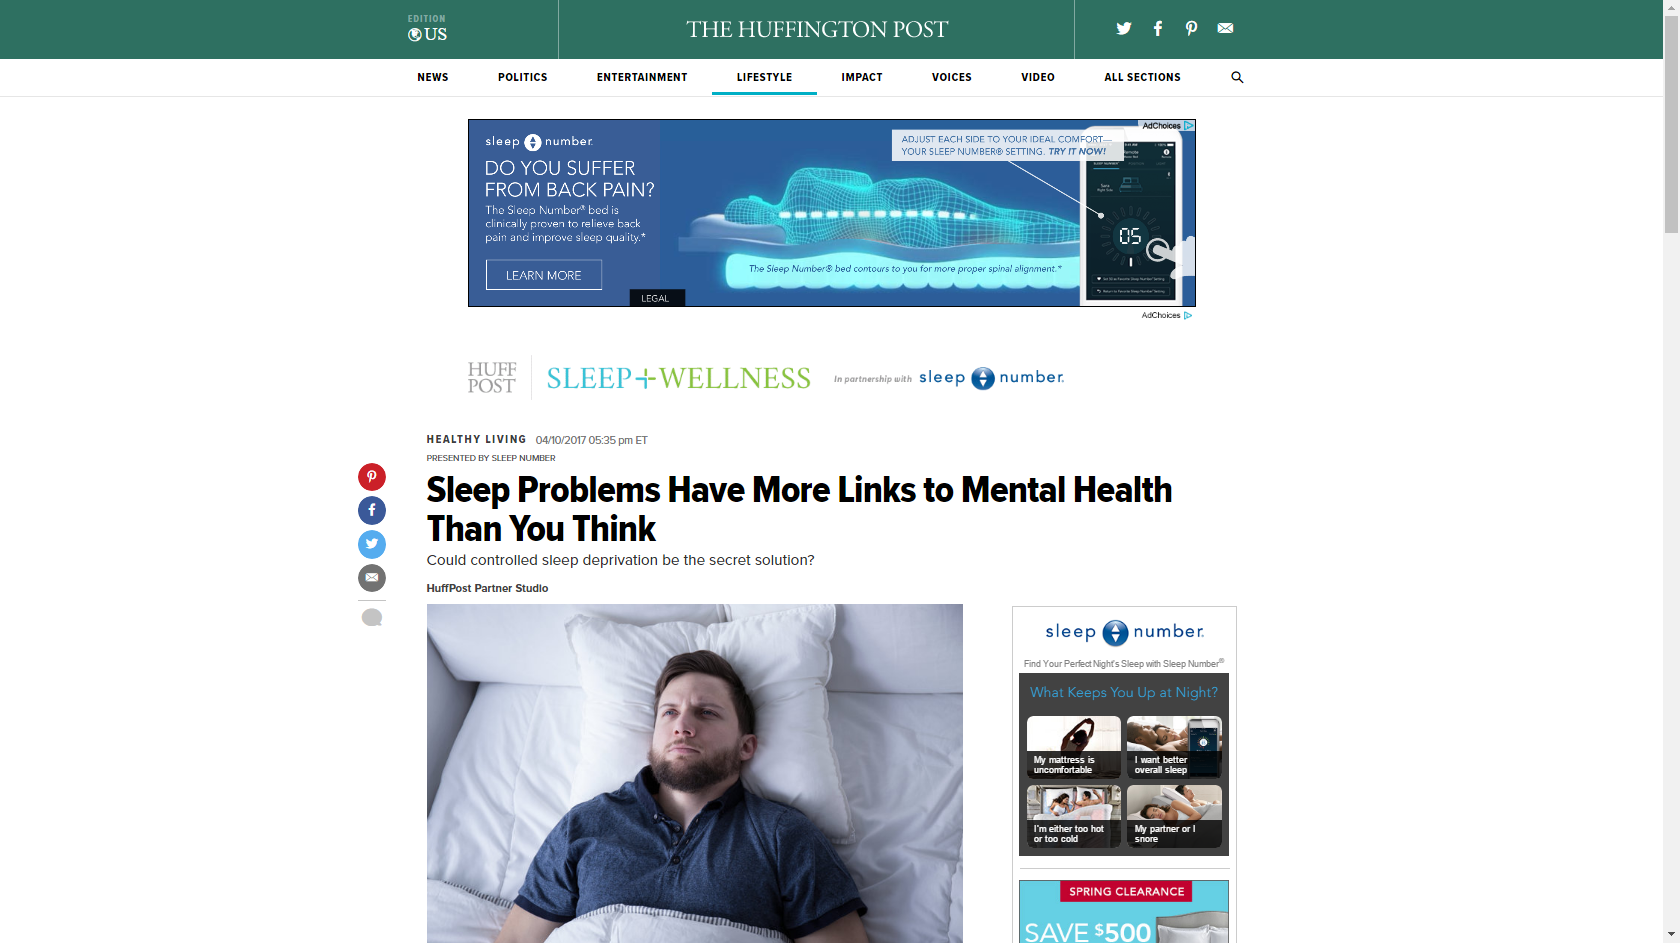 Do sleep problems lead to mental issues? or both ?